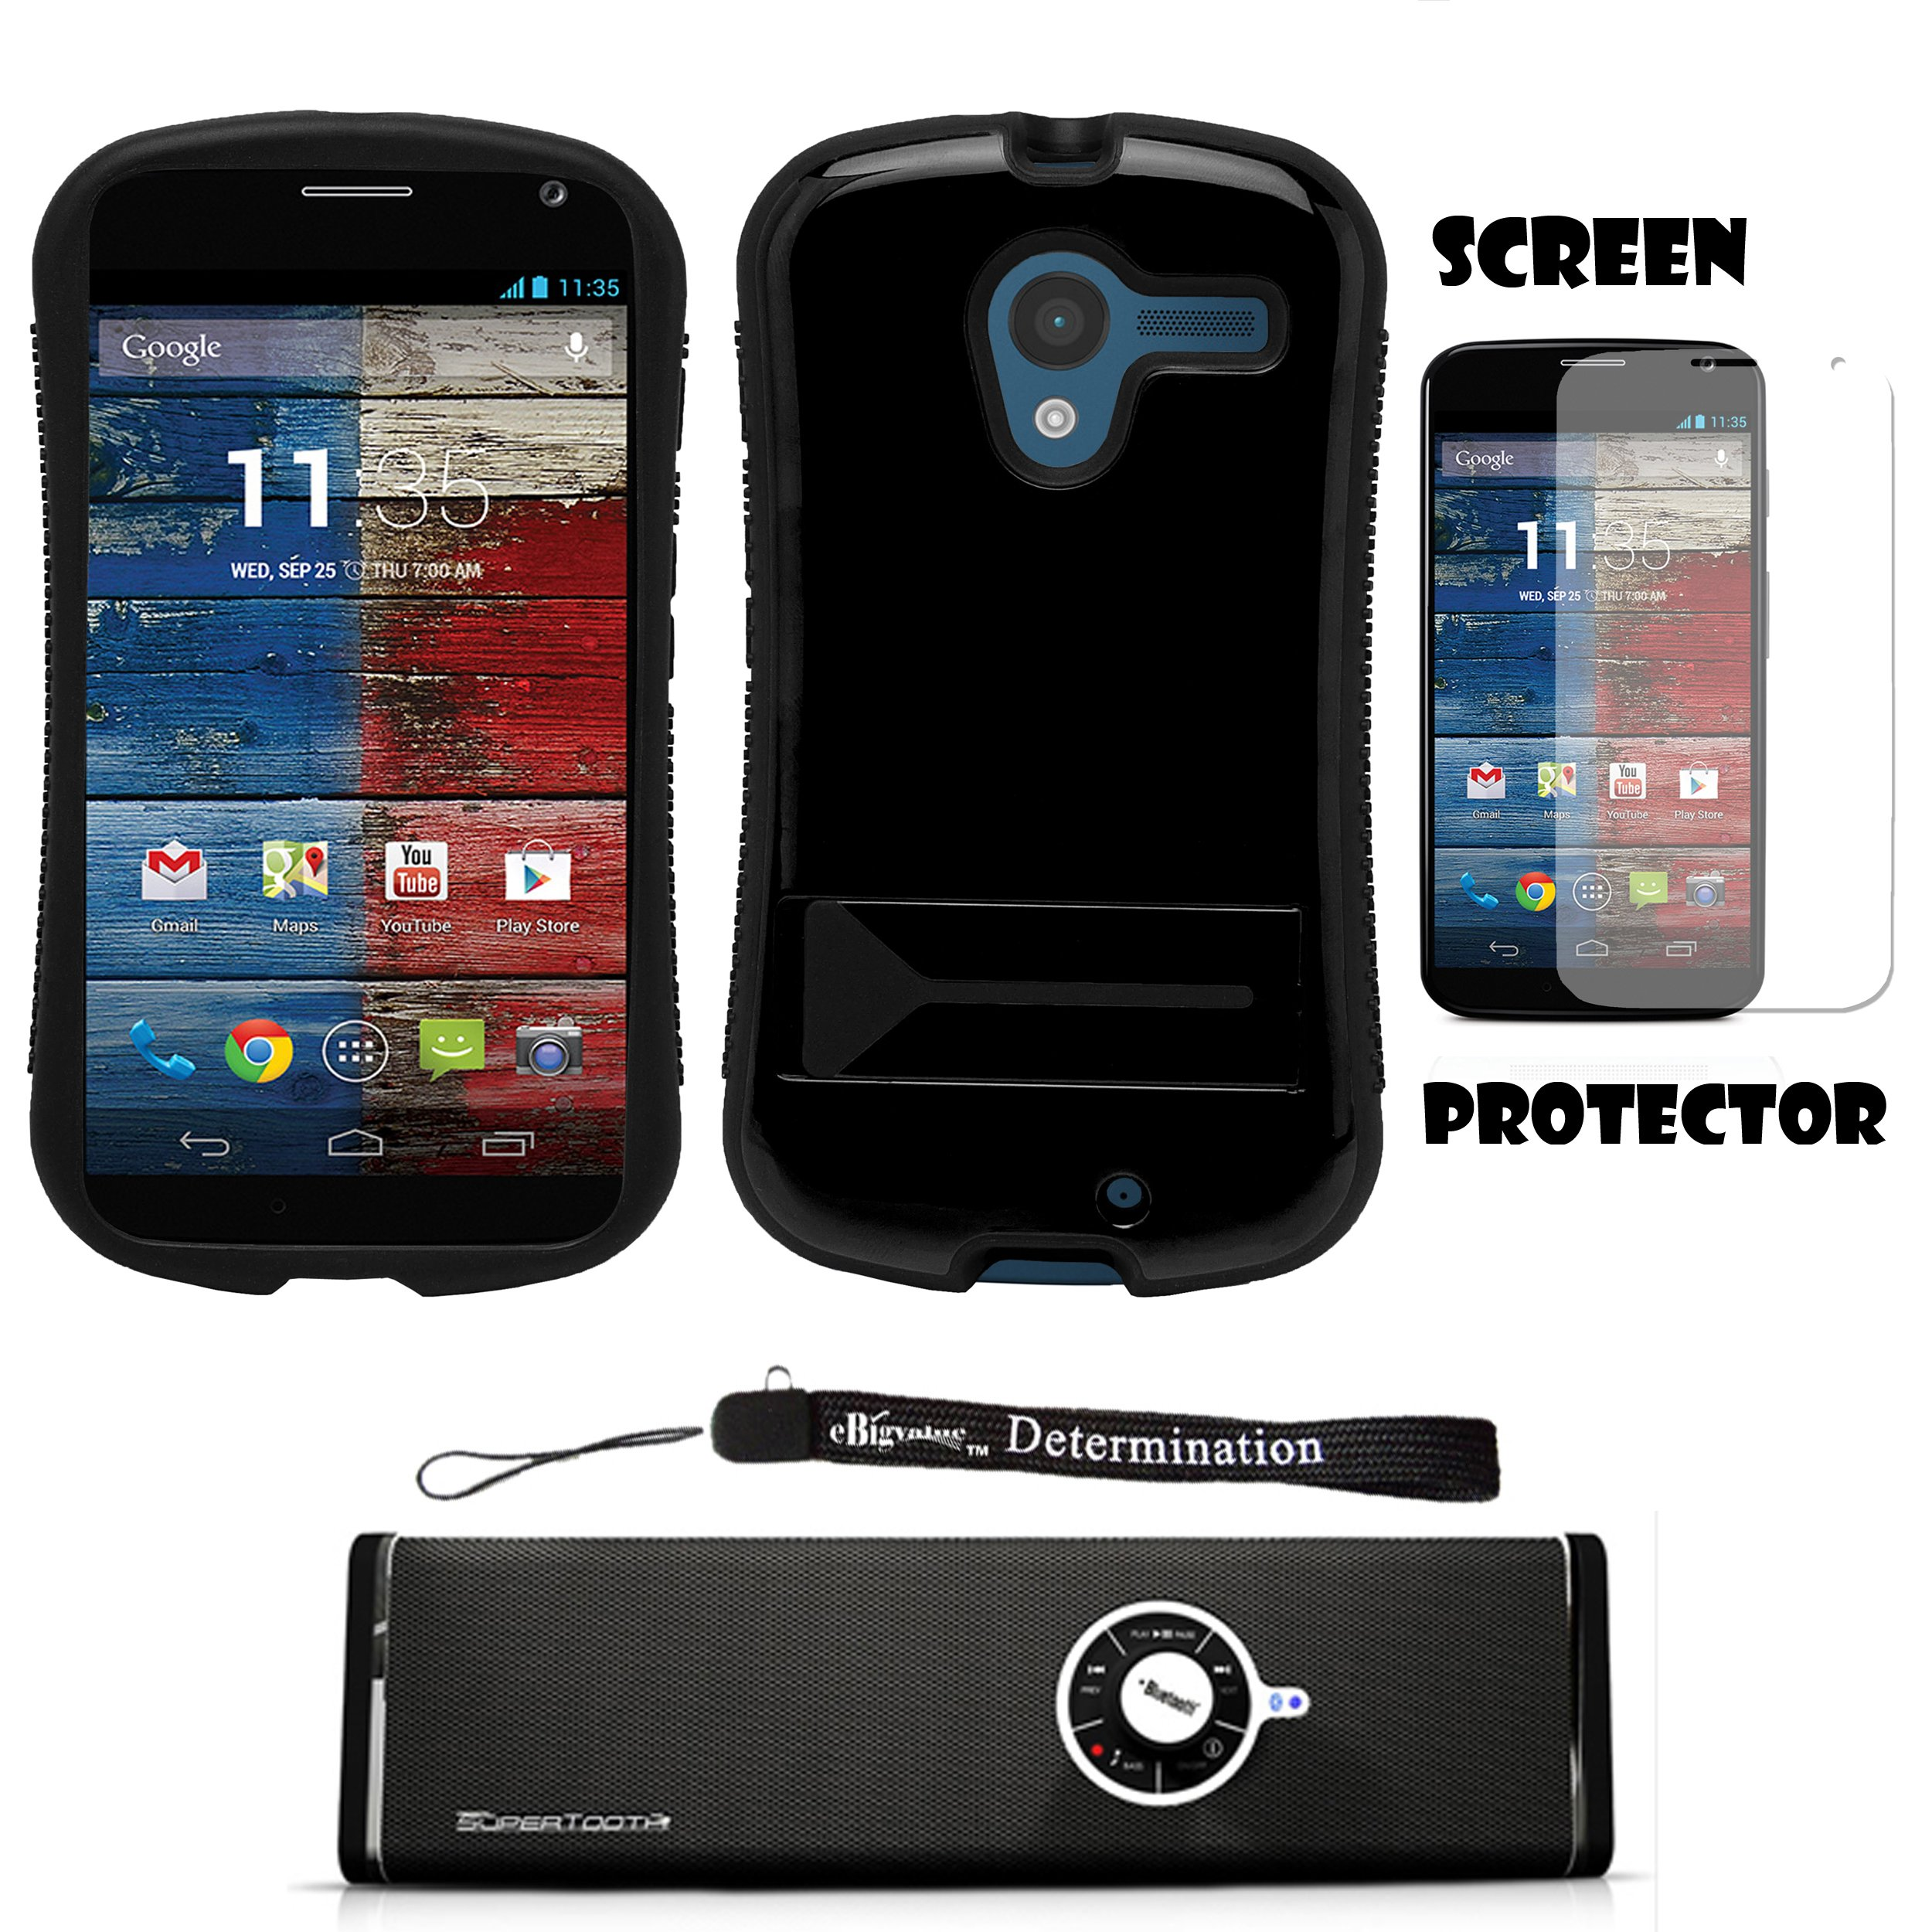 Black Hybrid Tough Protective Shield Cover Case with Kick Stand For Motorola Moto X Android OS V4 2.2 (Jelly Bean) + Motorola Moto X Clear Screen Protector + Supertooth Disco Bluetooth Speaker with AUX Cable + an eBigValue Determination Hand Strap by eBigValue